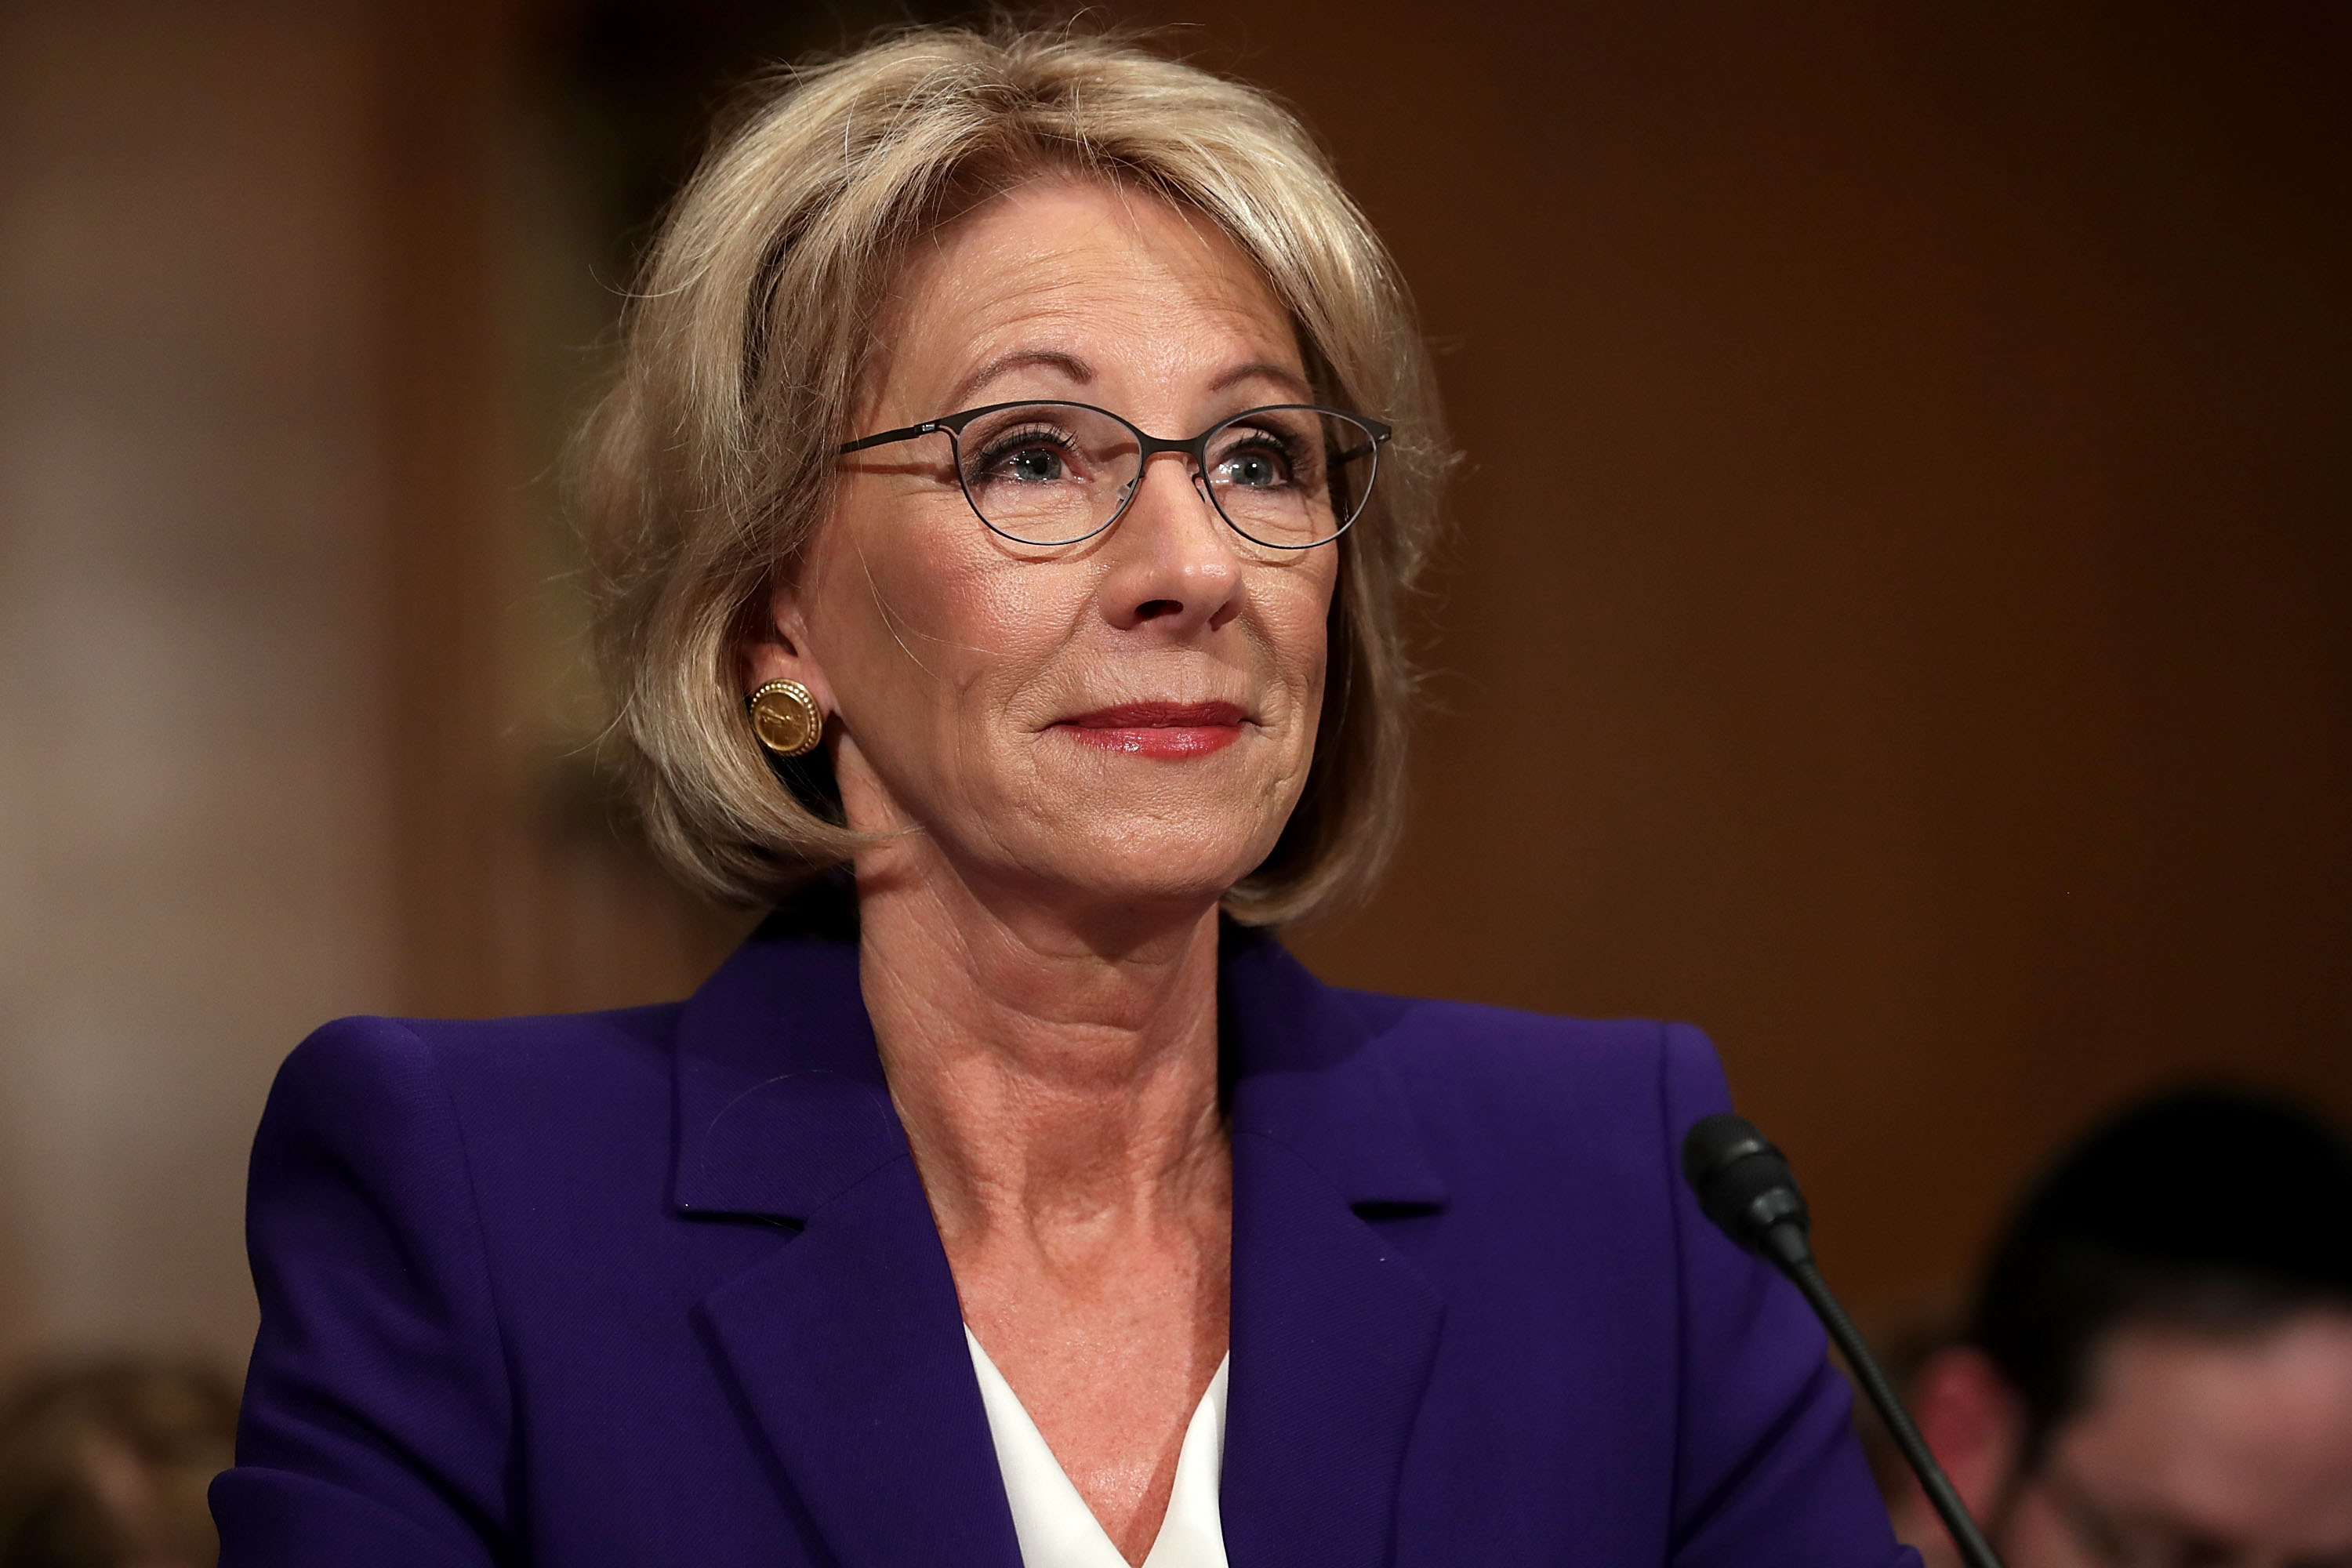 Education Secretary Betsy Devos >> Betsy Devos Was Asked A Basic Question About Education Policy And